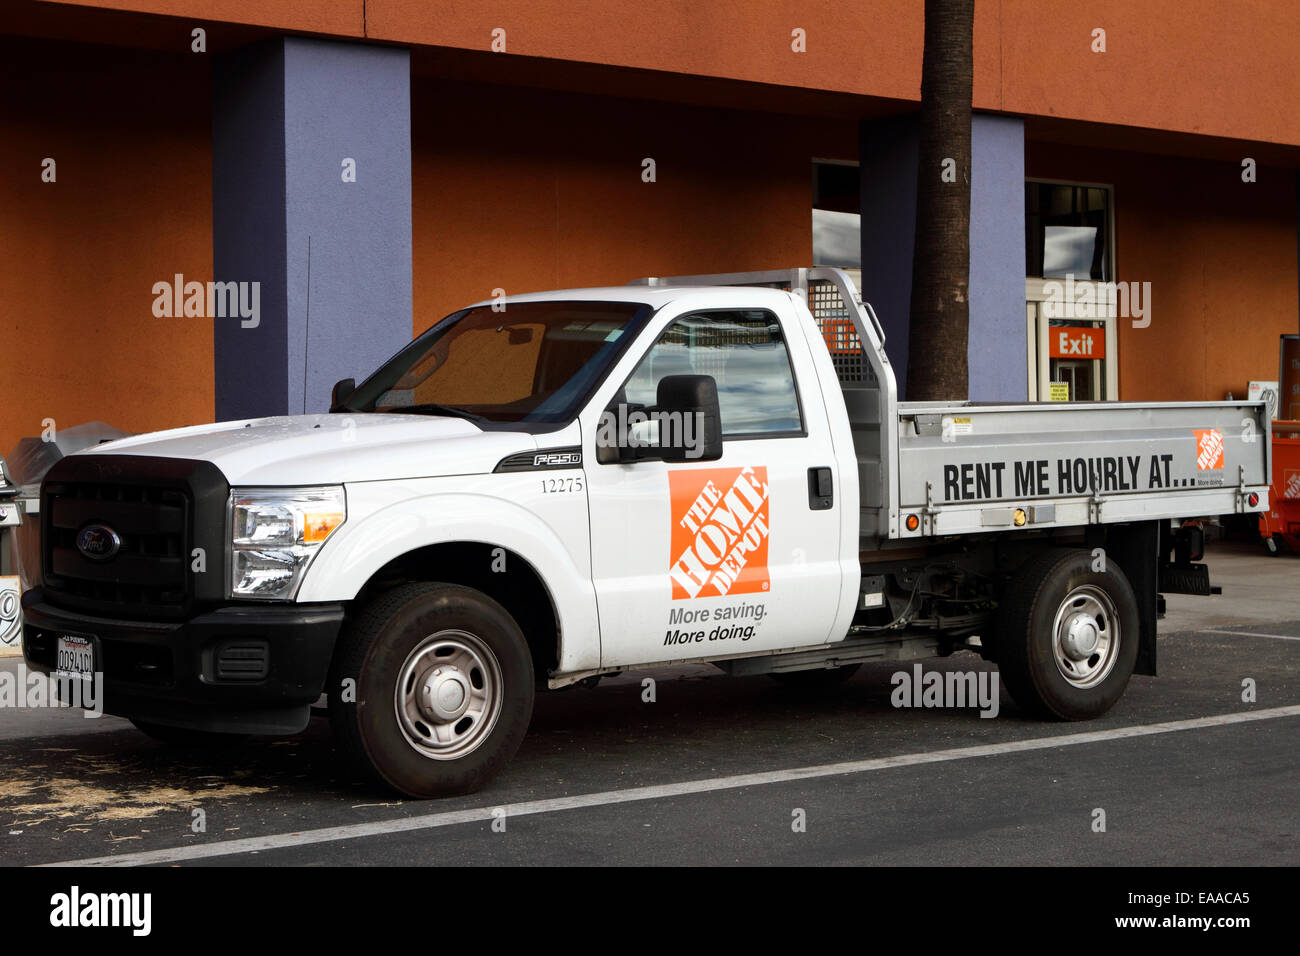 Home Depot Truck For Rent Outside A Store Building In Tustin Stock